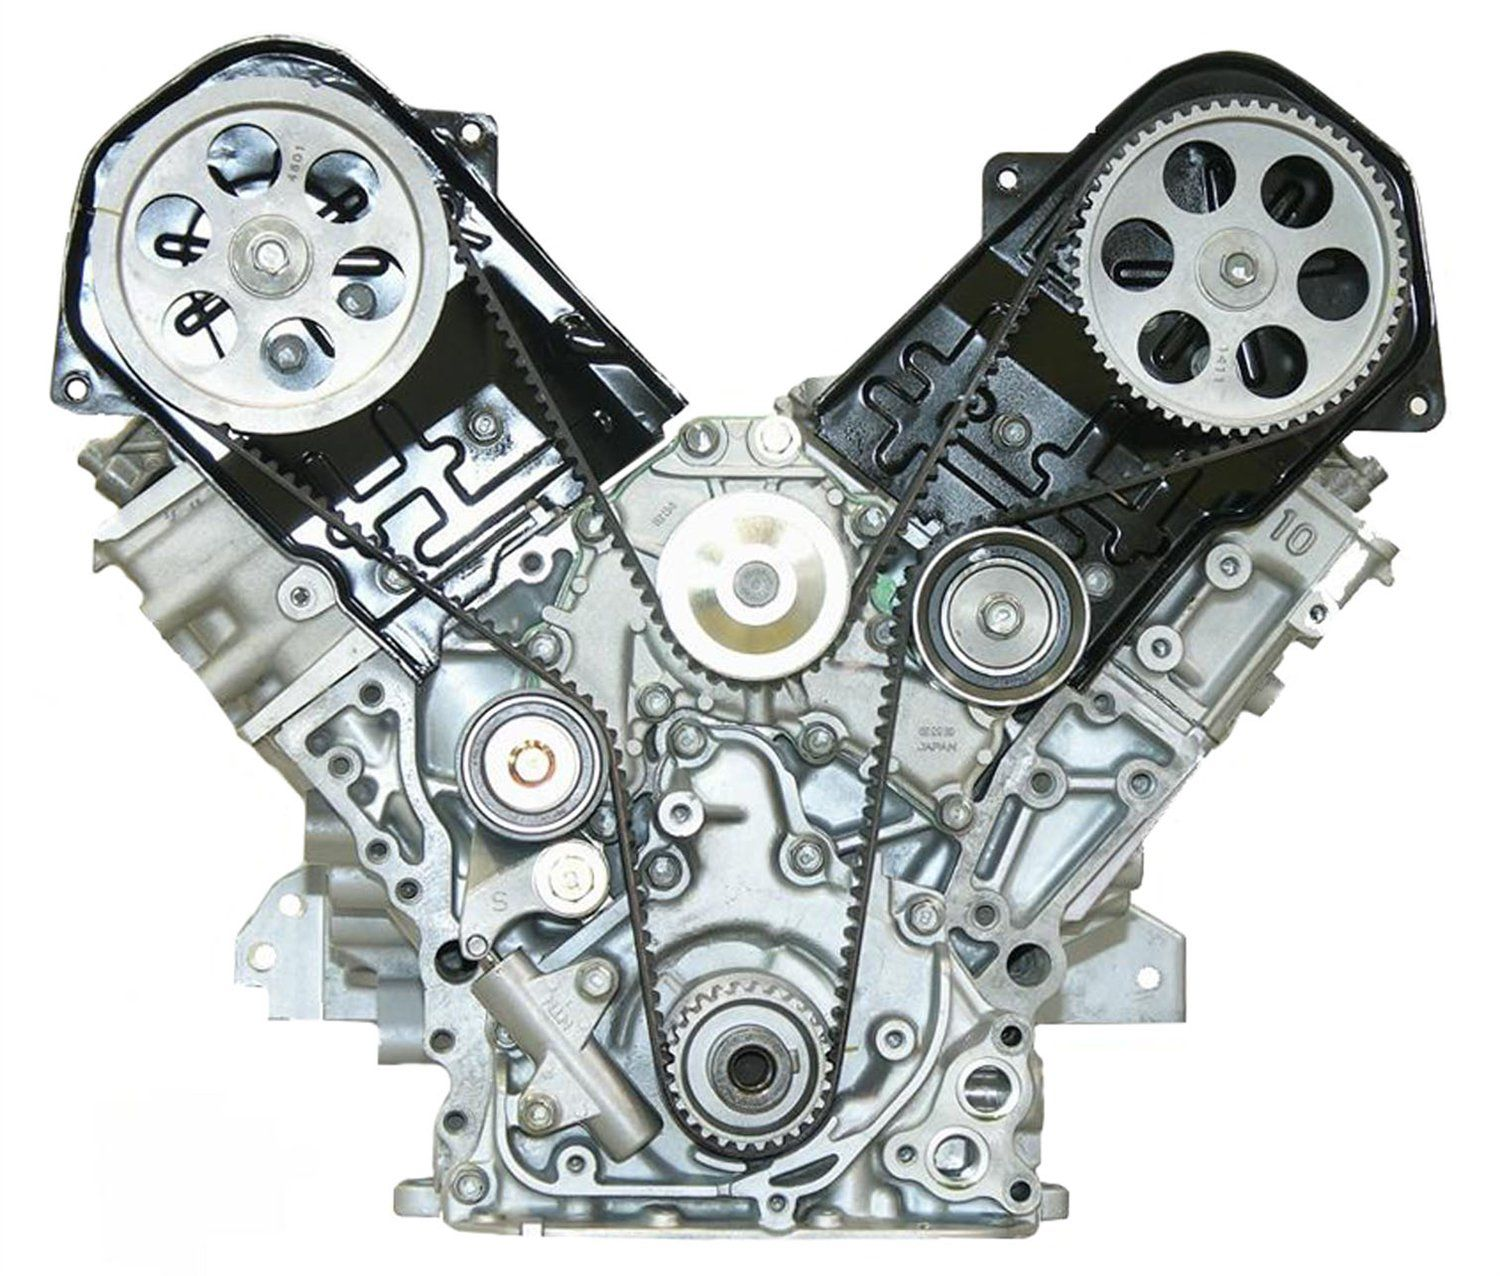 Atk Engines 110a Remanufactured Crate Engine For 1992 1995 Isuzu Honda With 3 2l V6 Jegs Remanufactured Engines Engineering Automobile Engineering